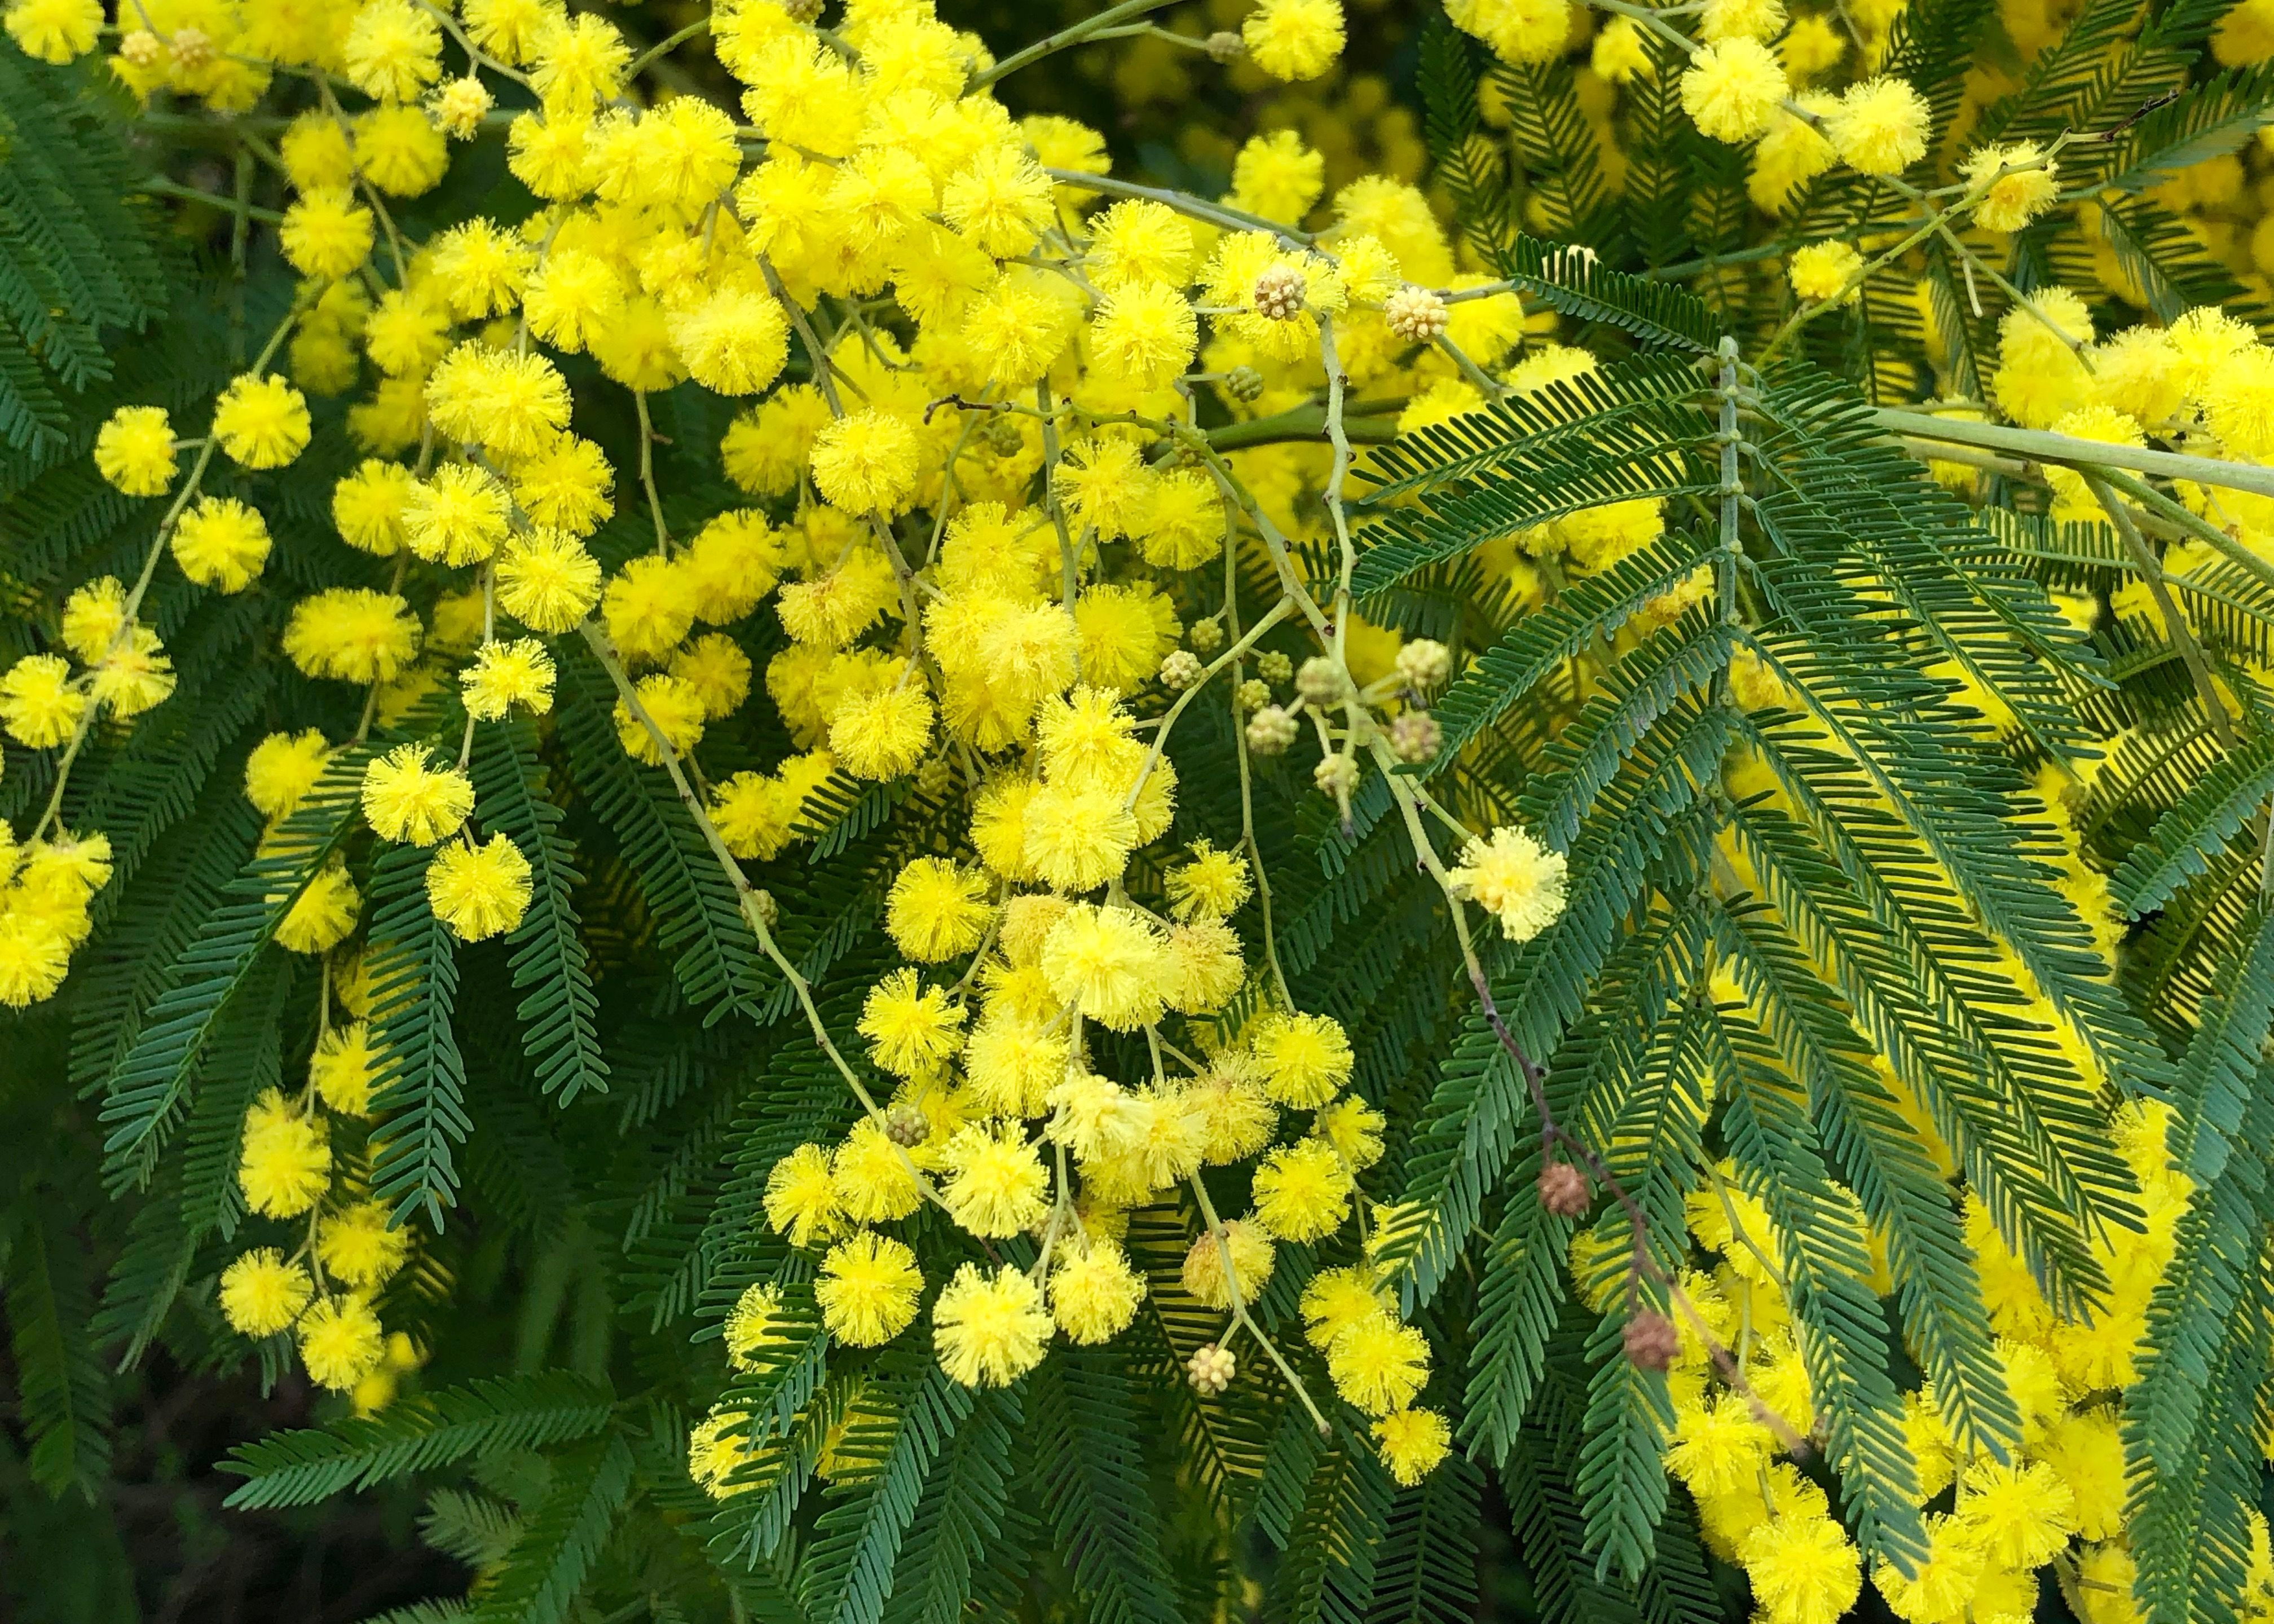 Acacia Dealbata Silver Wattle Or Mimosa Is A Winter Blooming